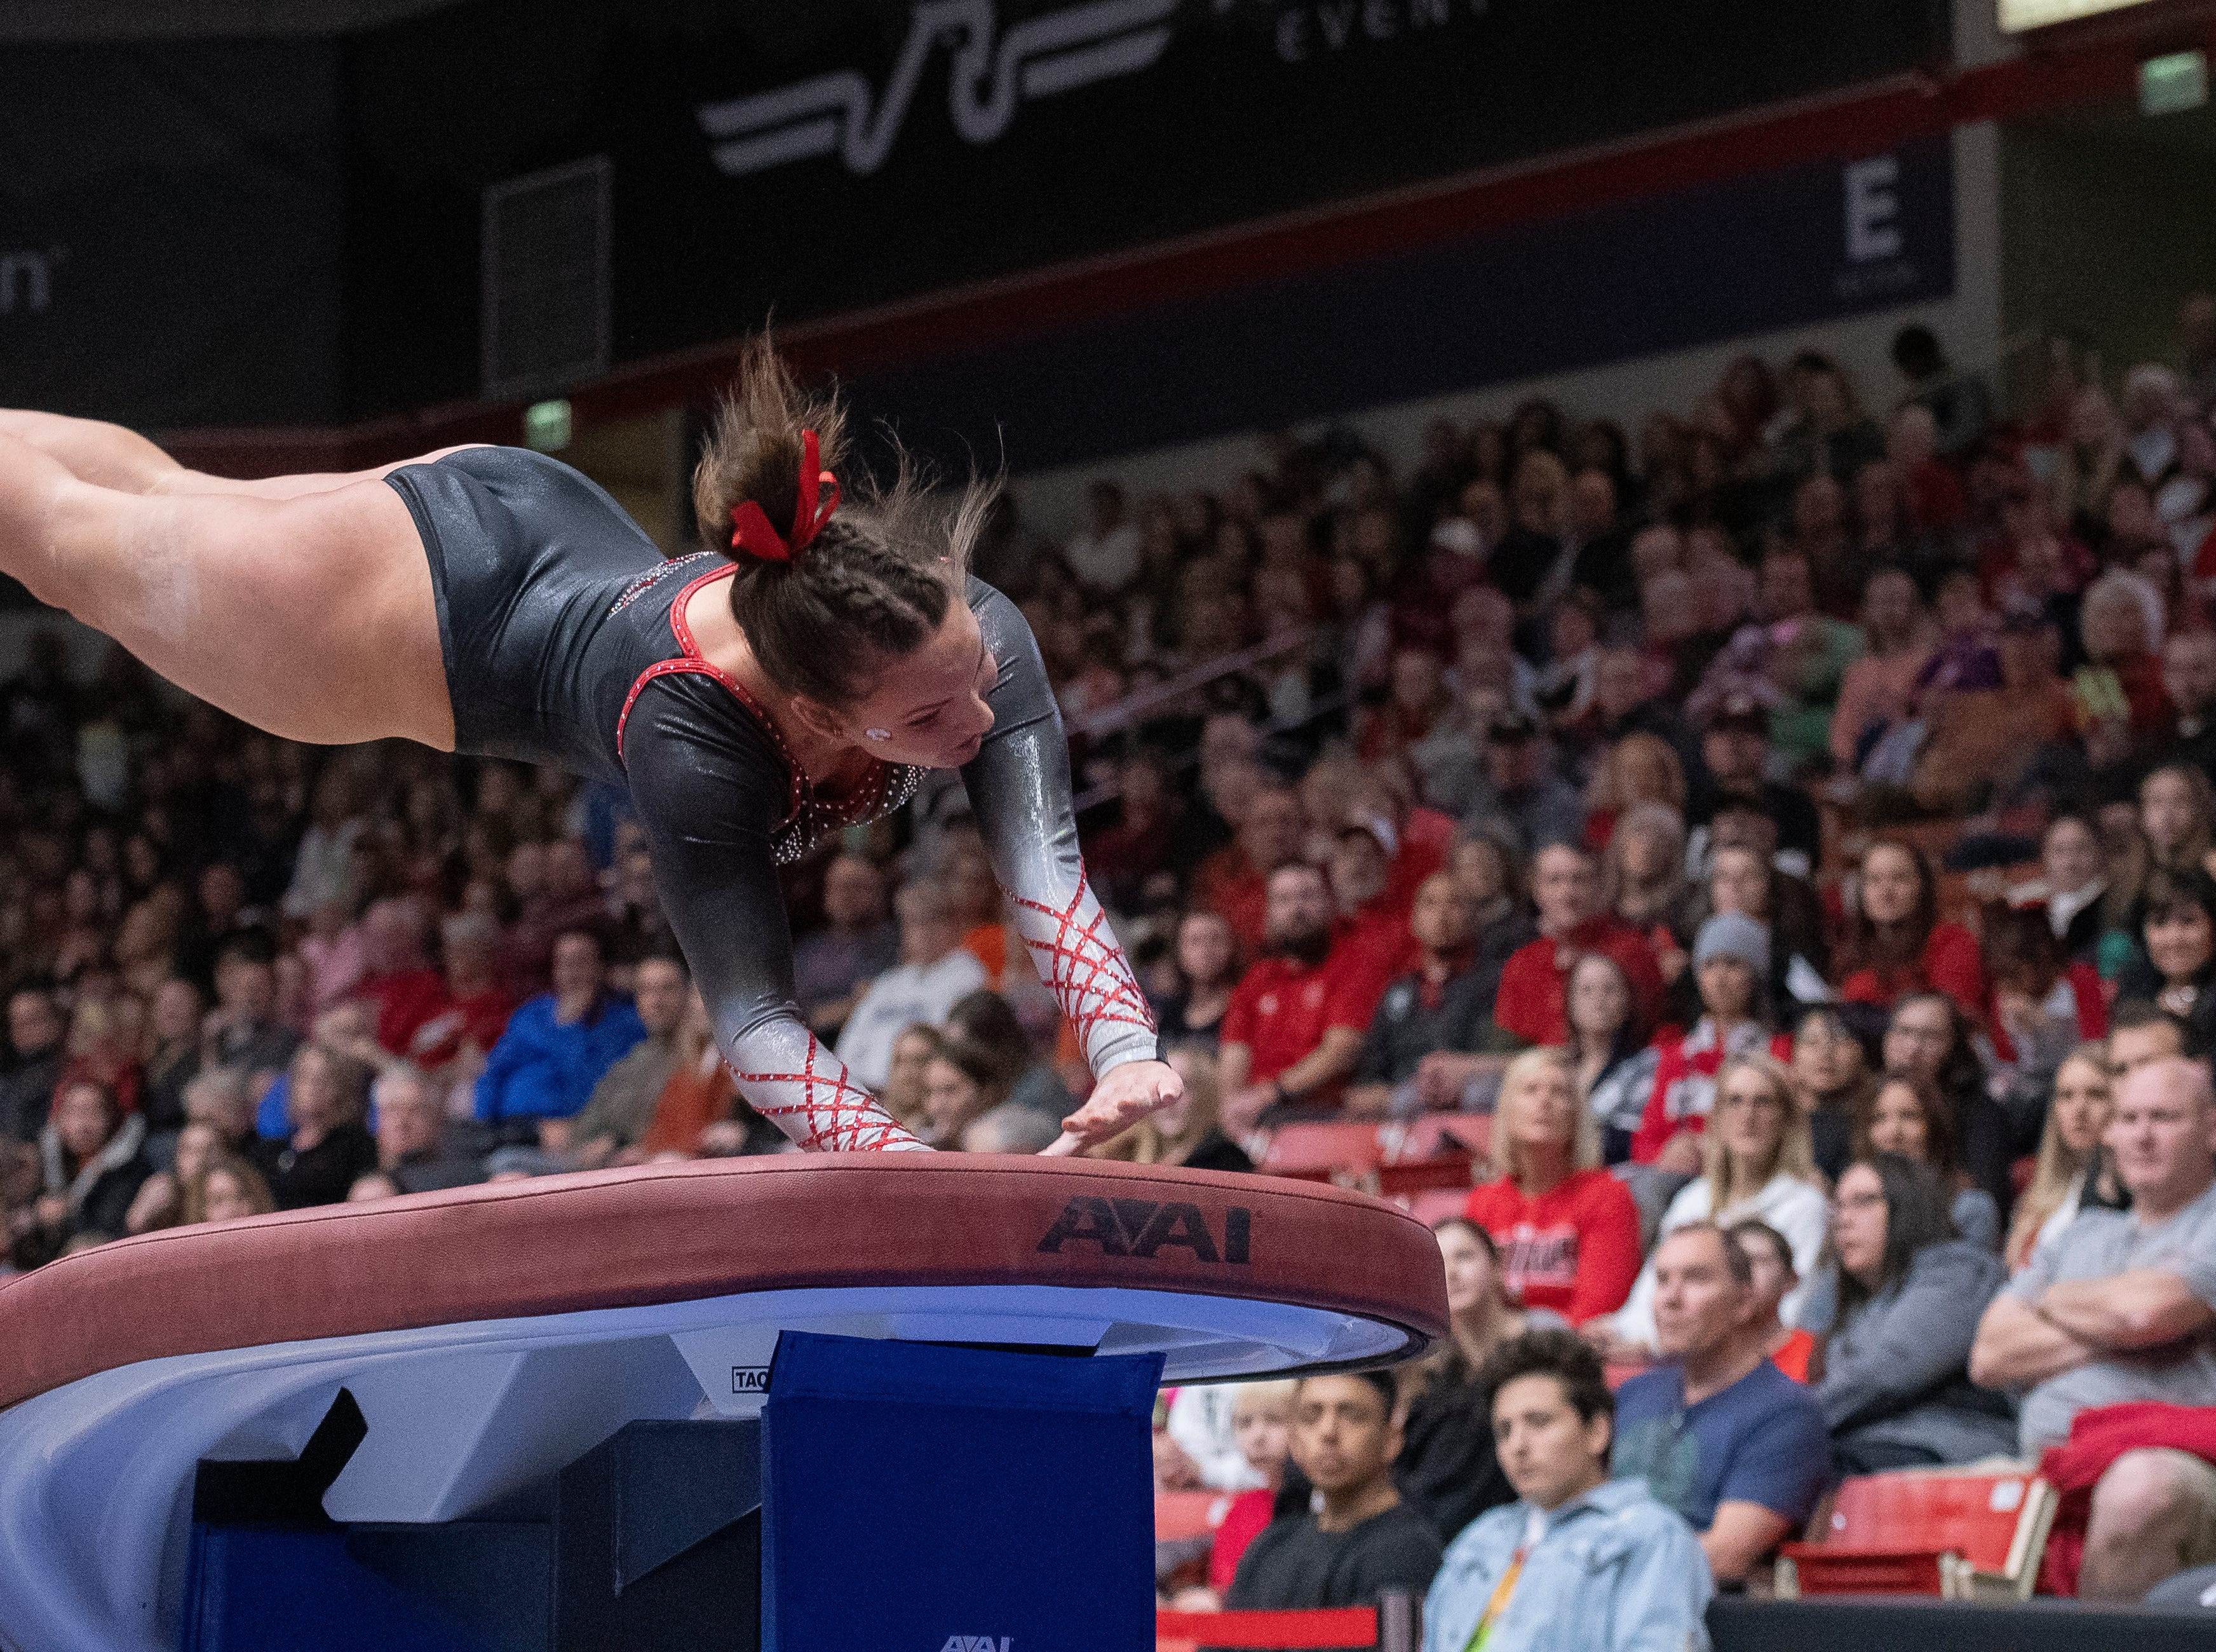 Southern Utah University freshman Rachel Smith competes on the vault against Boise State at the America First Event Center Friday, January 18, 2019.